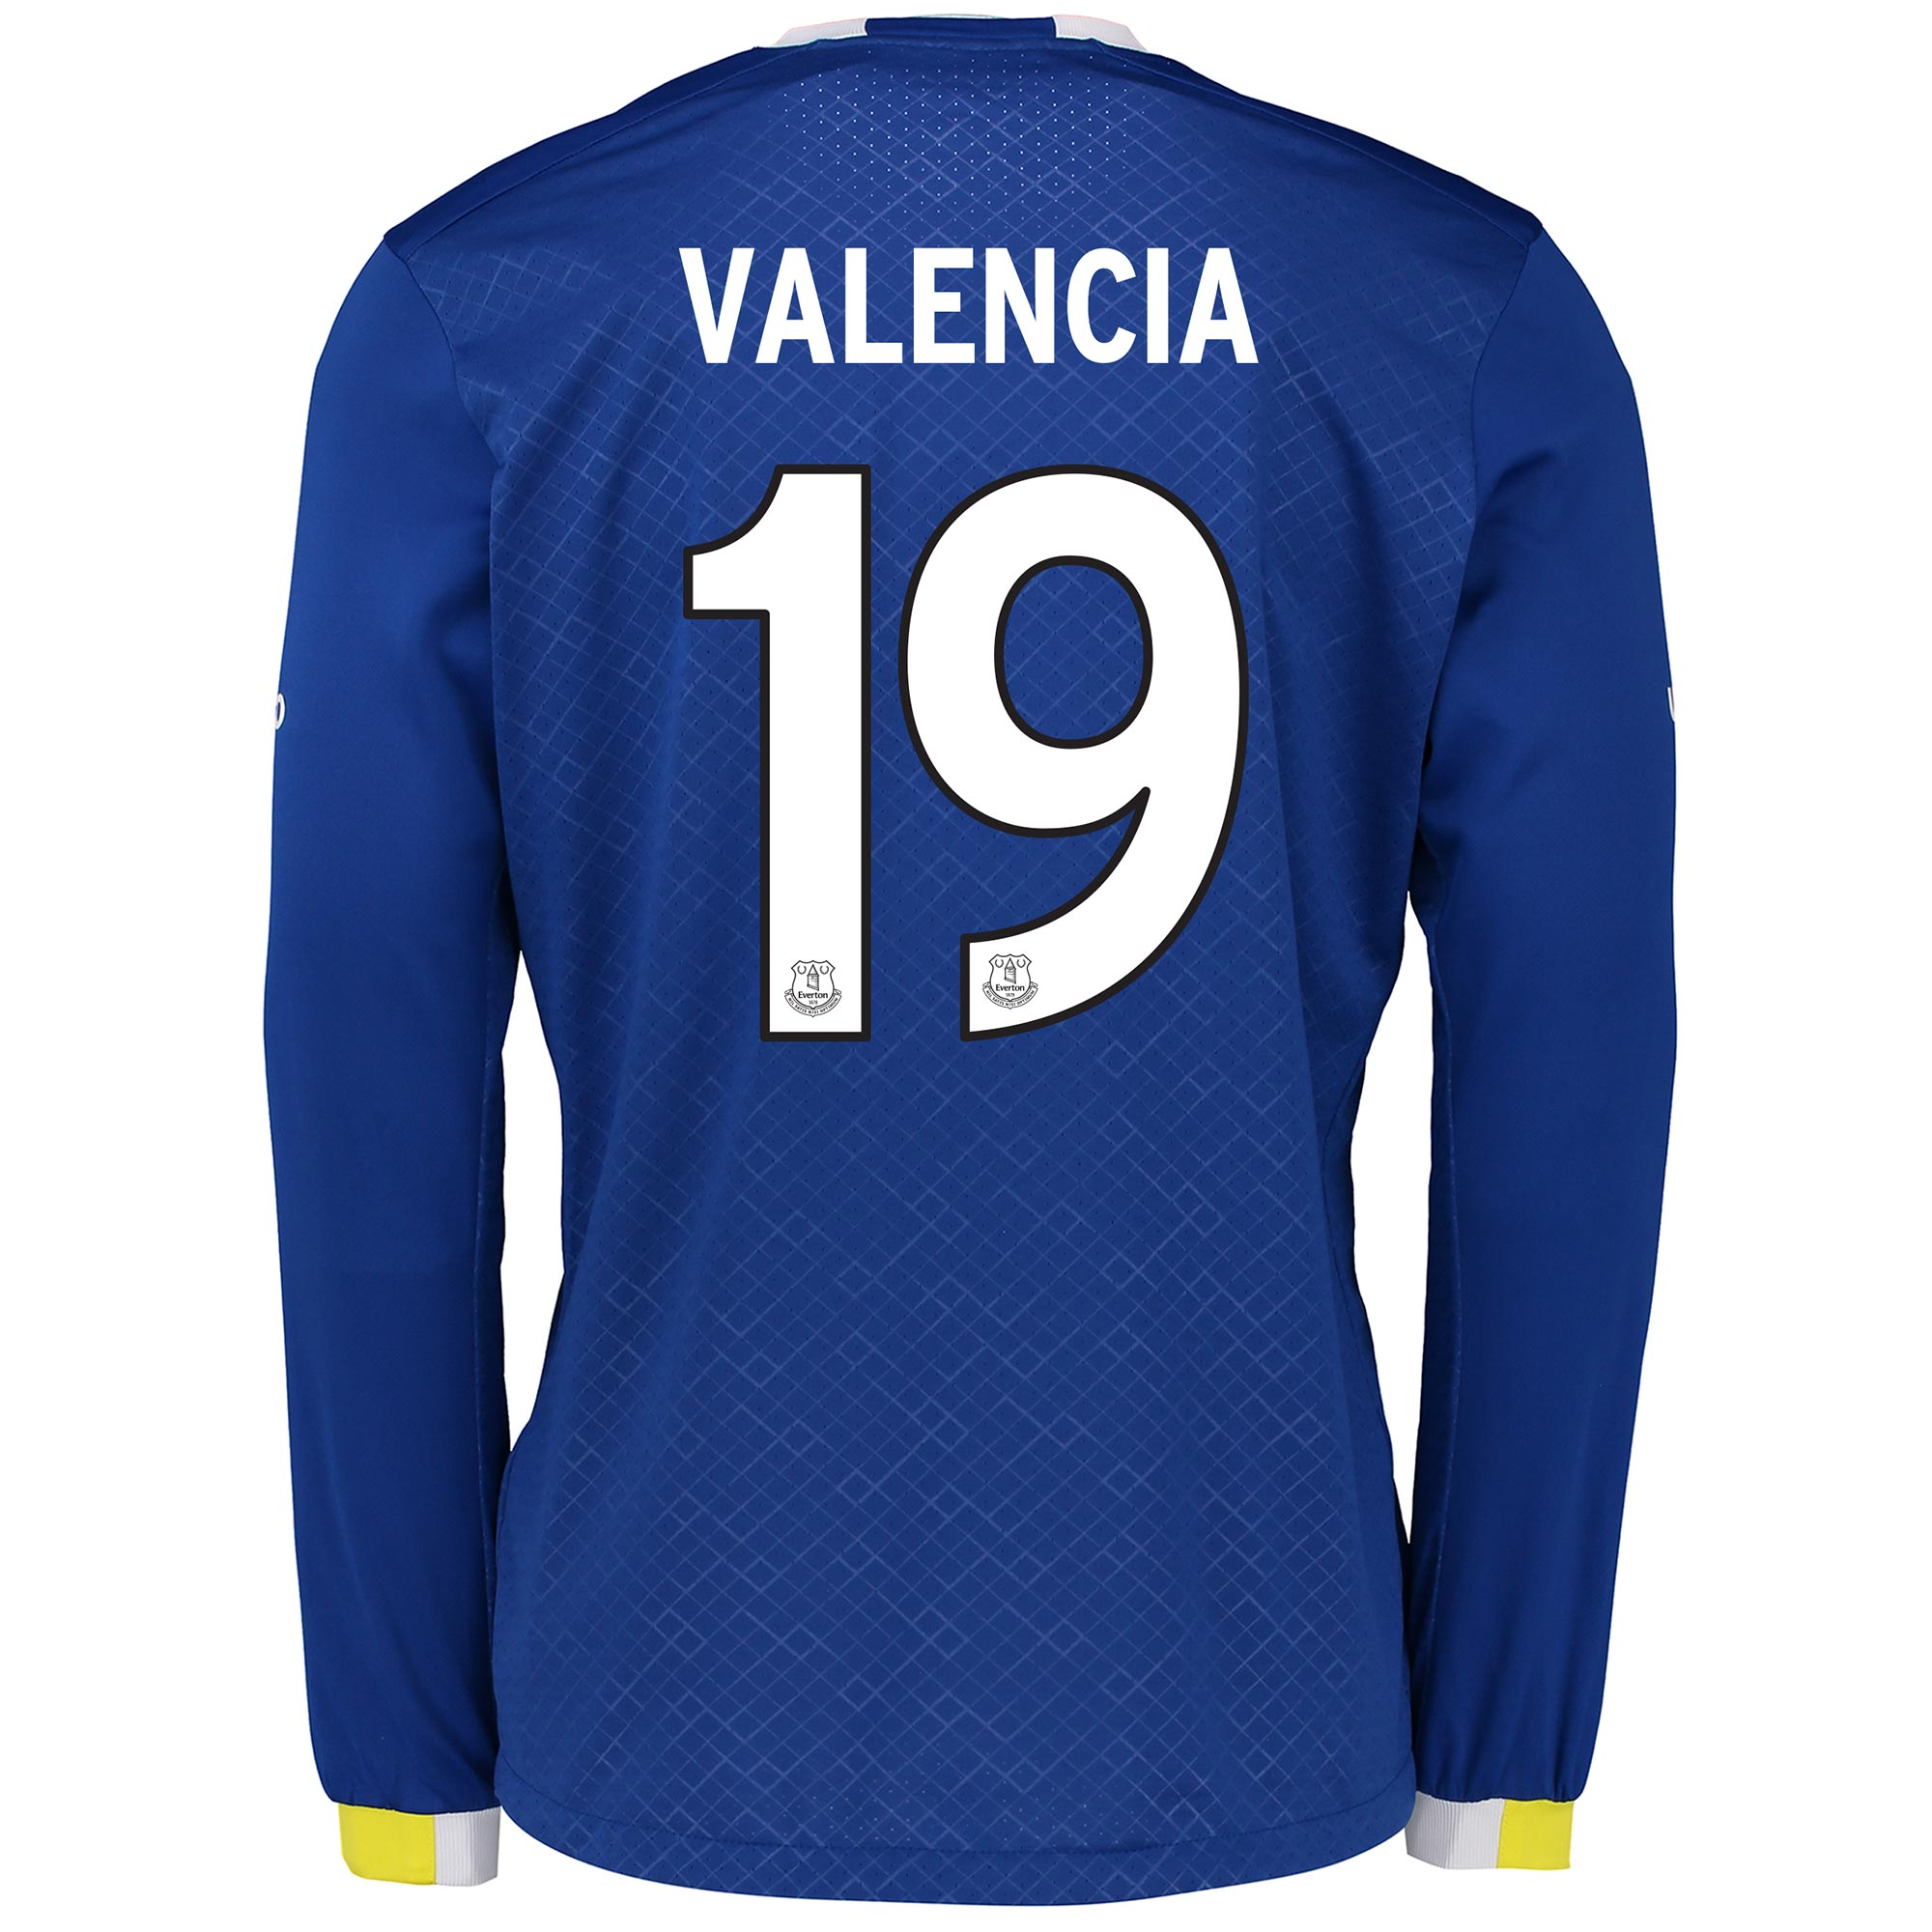 Everton Home Cup Shirt 2016/17 - Long Sleeved with Valencia 19 printin